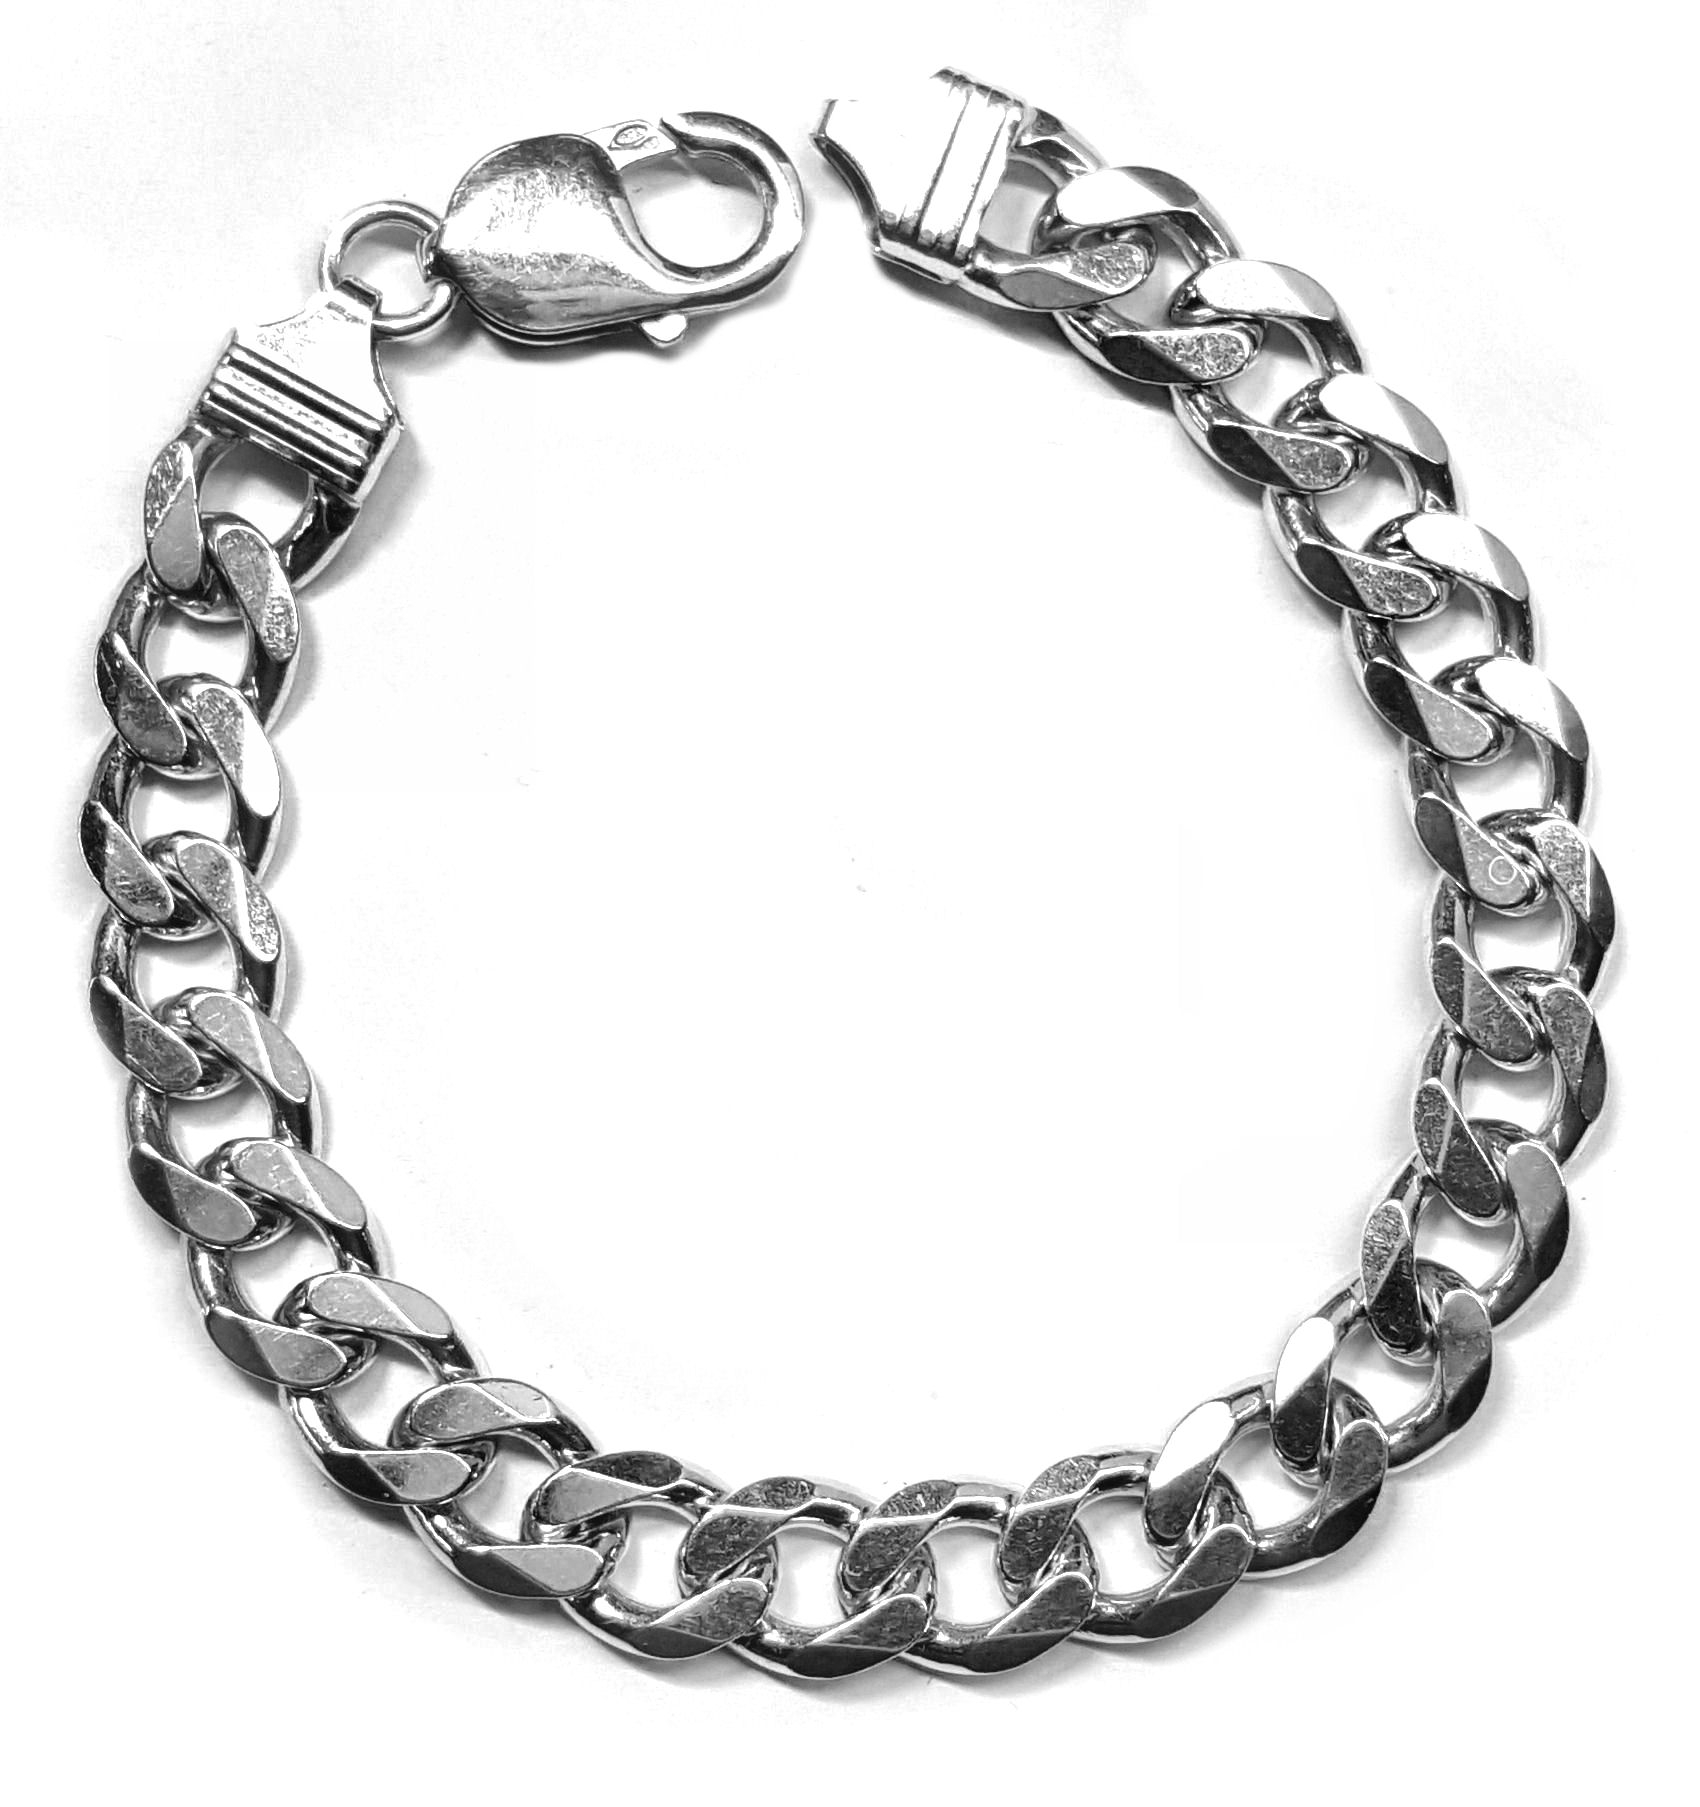 Sterling Silver Link Chains